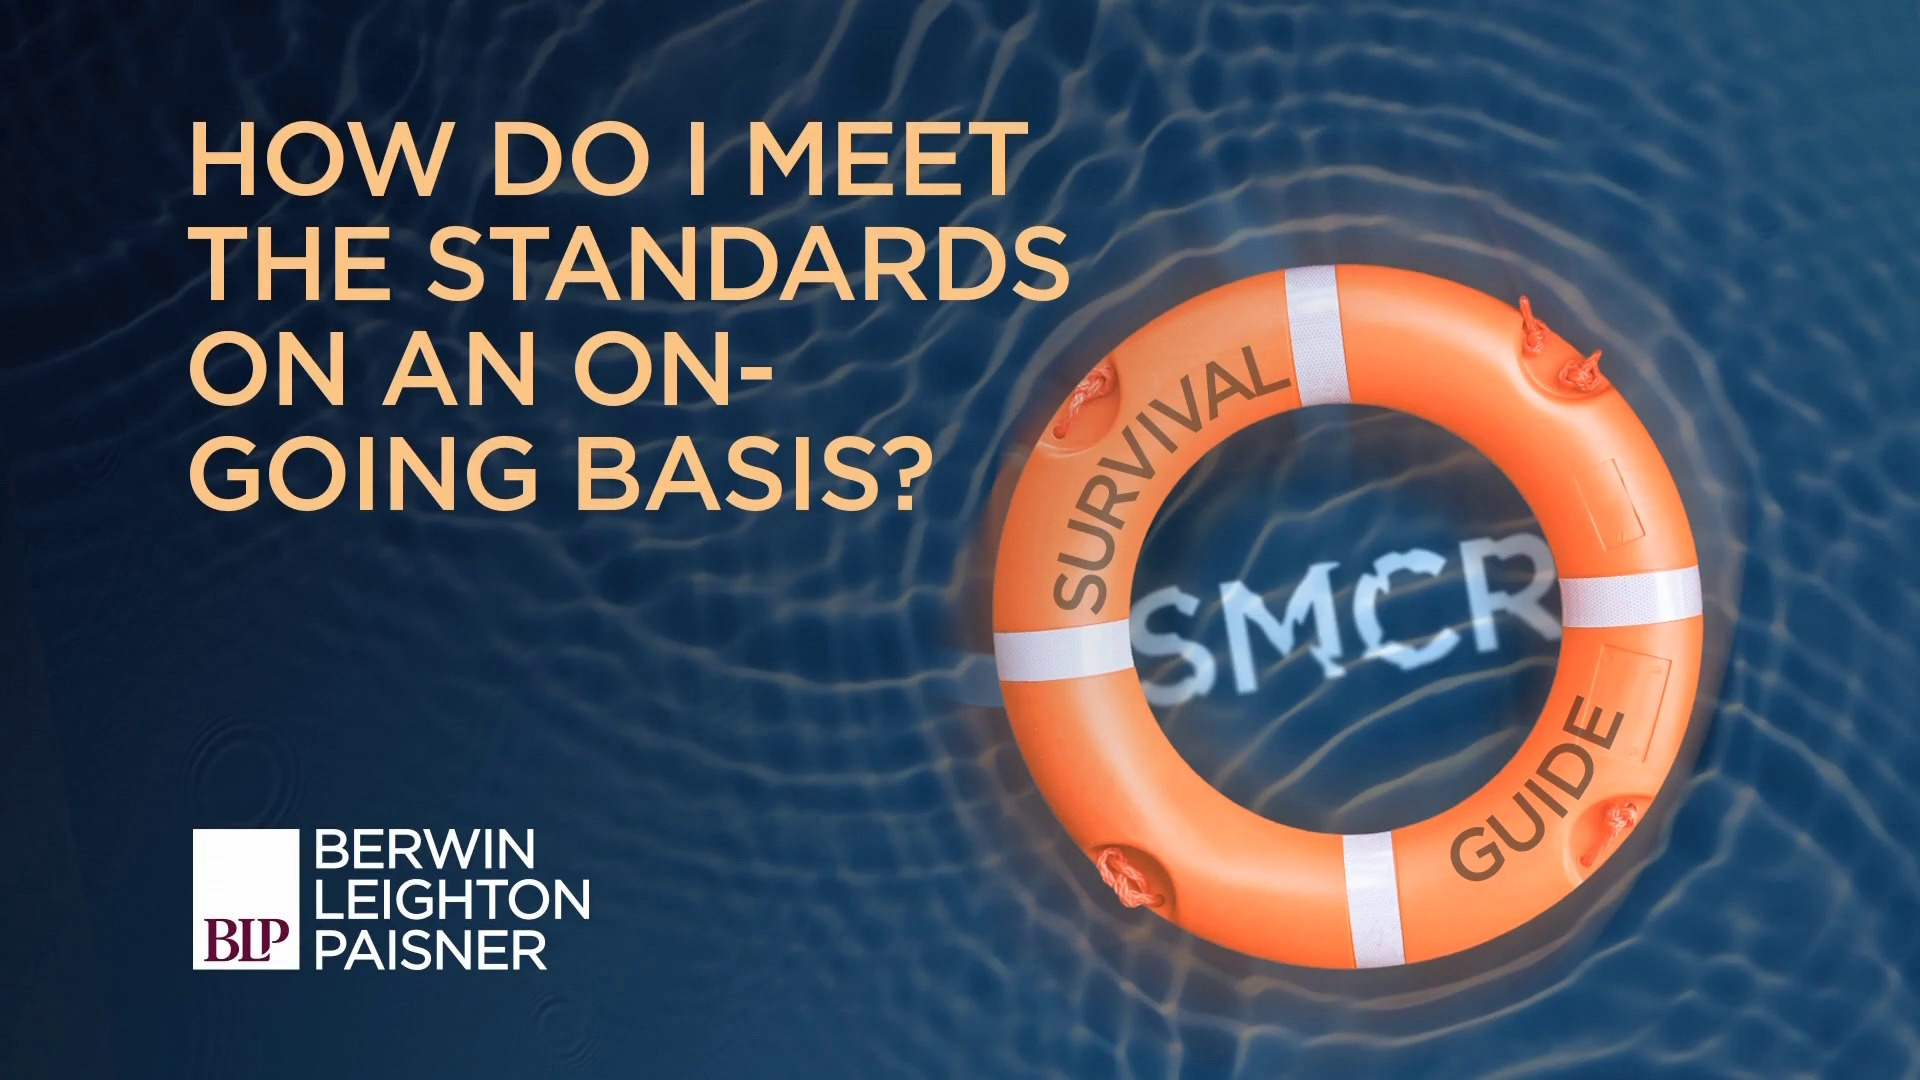 Still image from 'SMCR: How do I meet the standards on an ongoing basis?' video